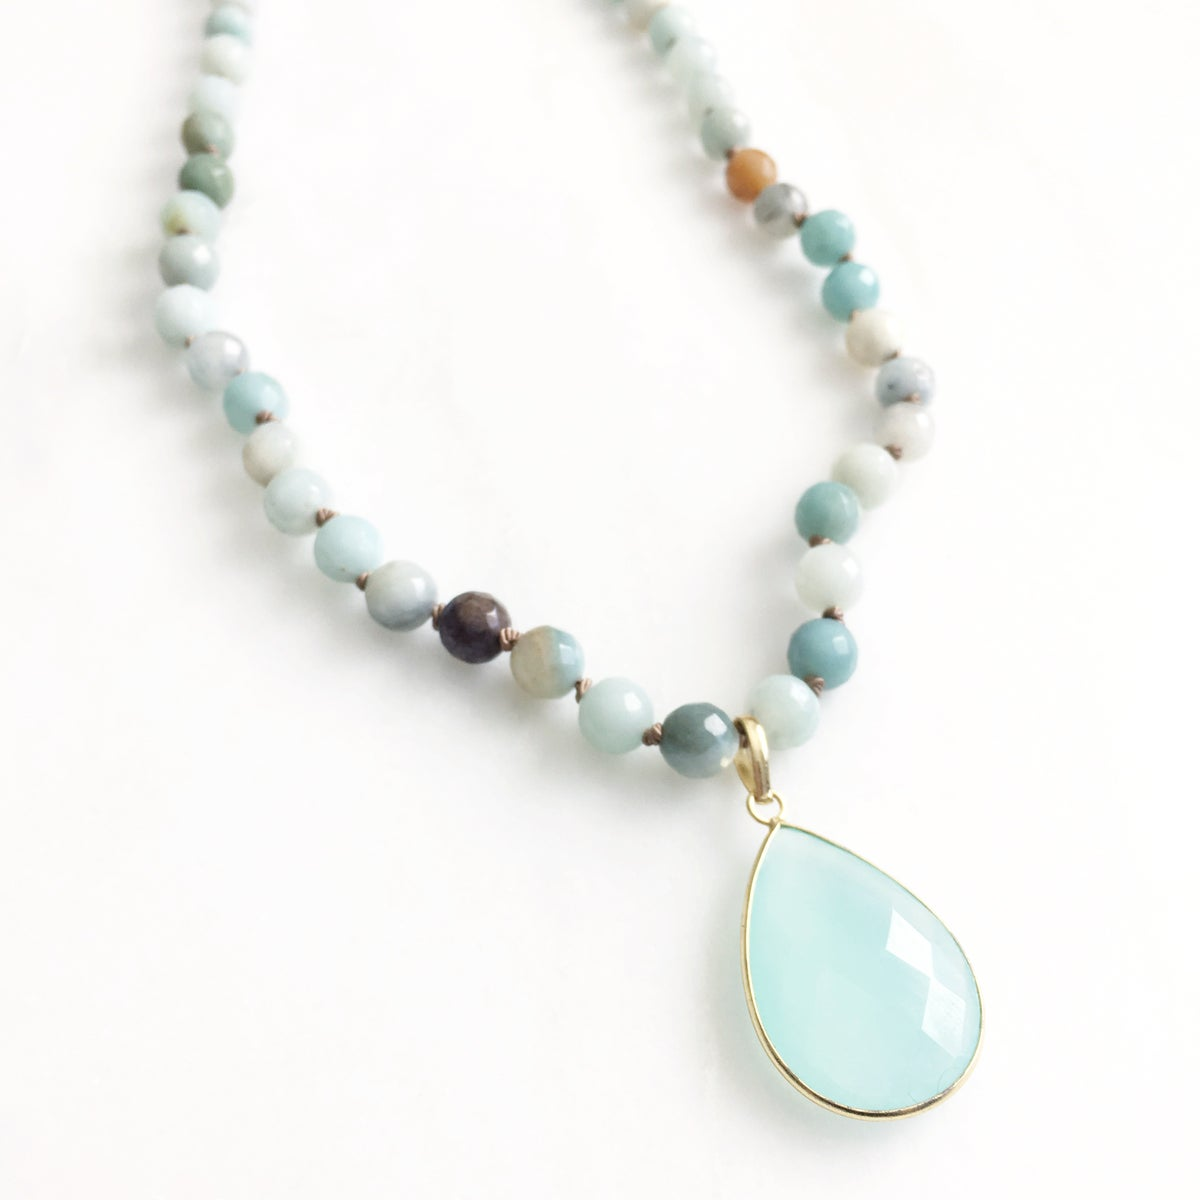 TenThings. COVE. Amazonite with Aqua Chalcedony. Necklace. N-8AMCOVE